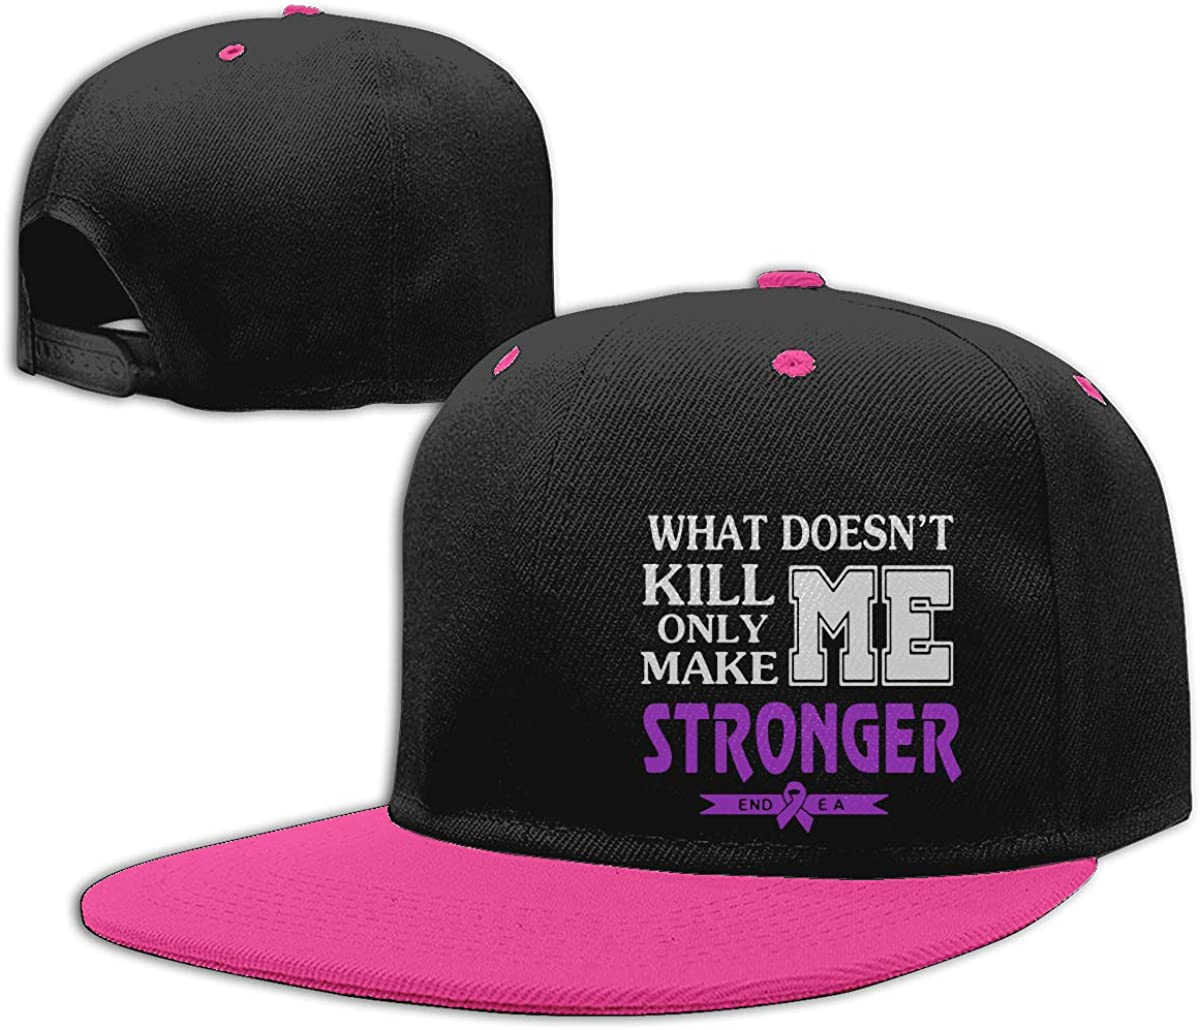 Epilepsy Awareness Printed Hip-Hop Baseball Caps NMG-01 Men Womens Trucker Cap